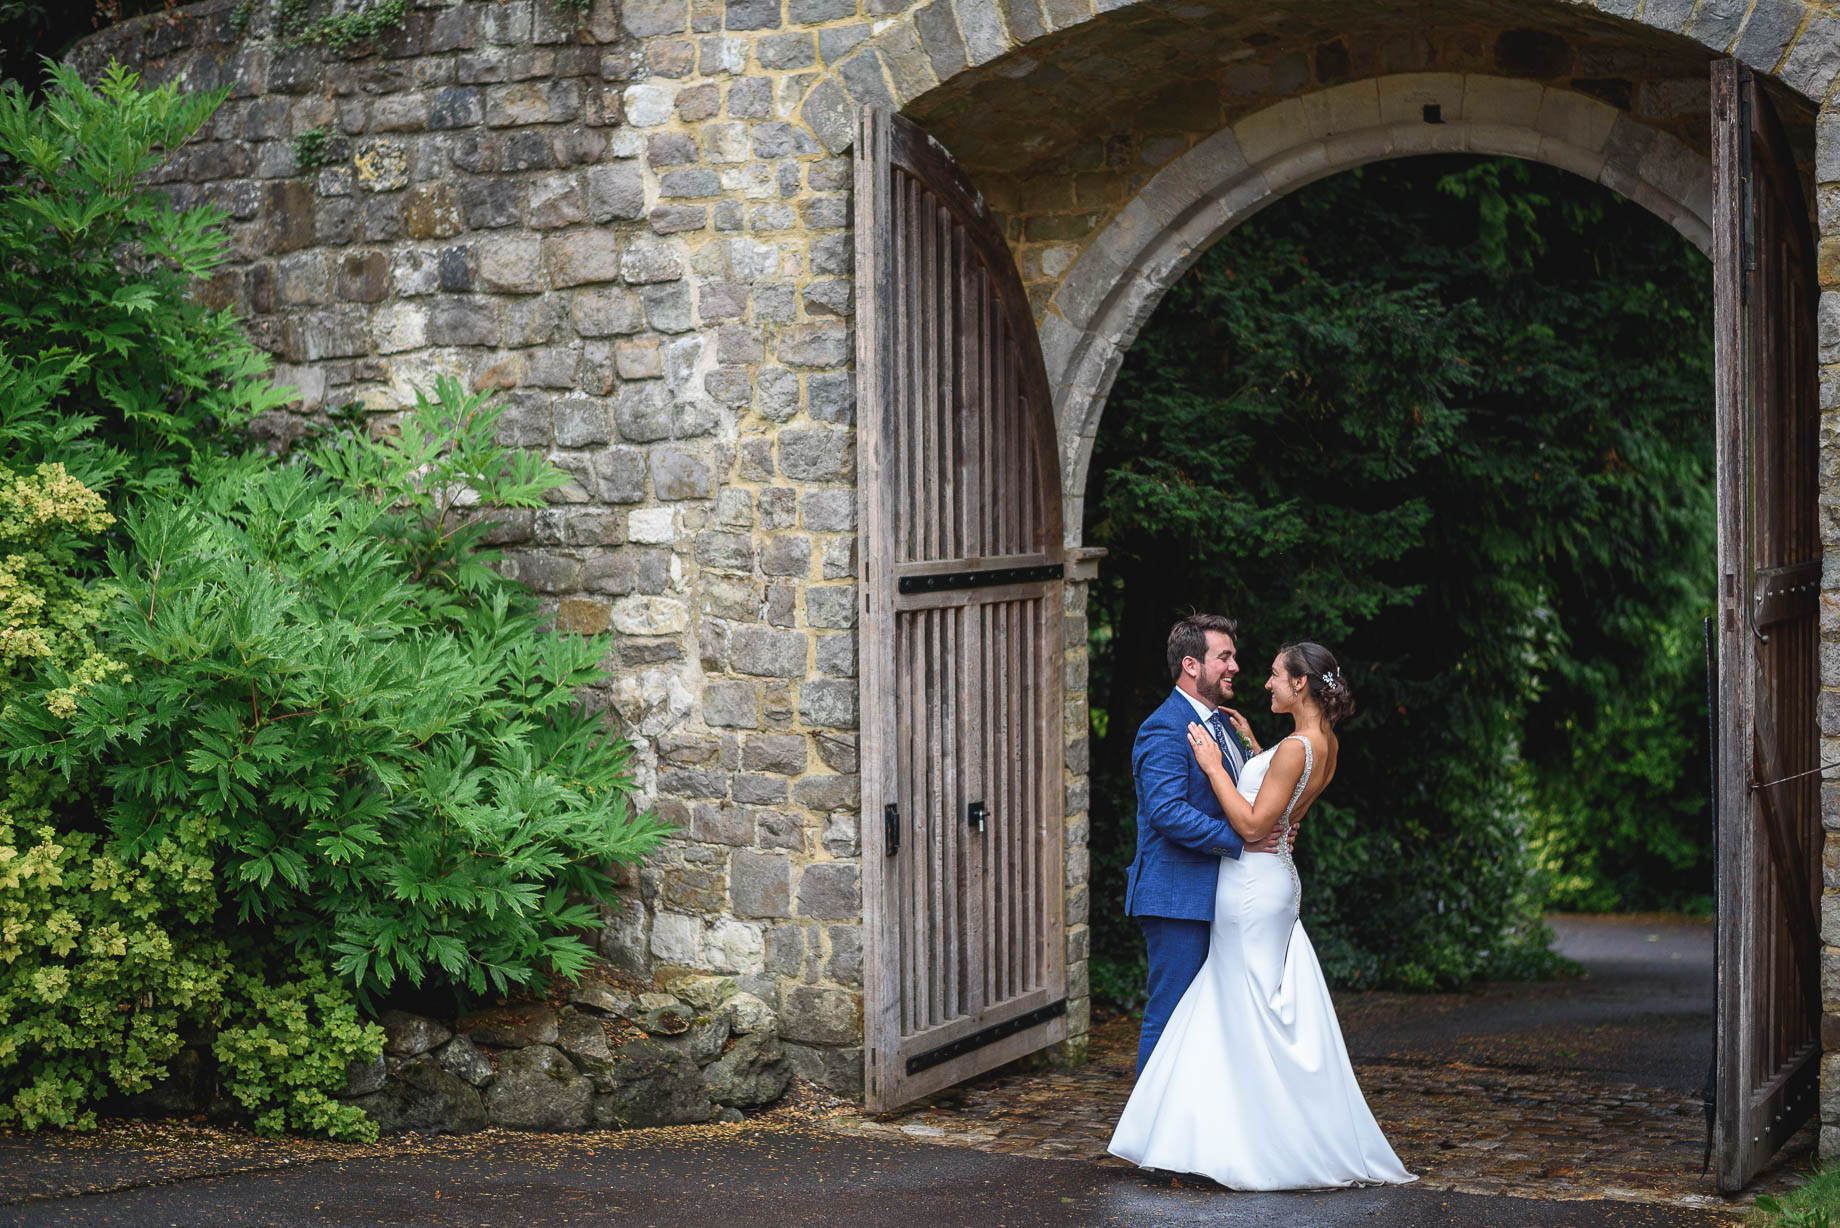 Farnham Castle wedding photography - Paulette and Laurence